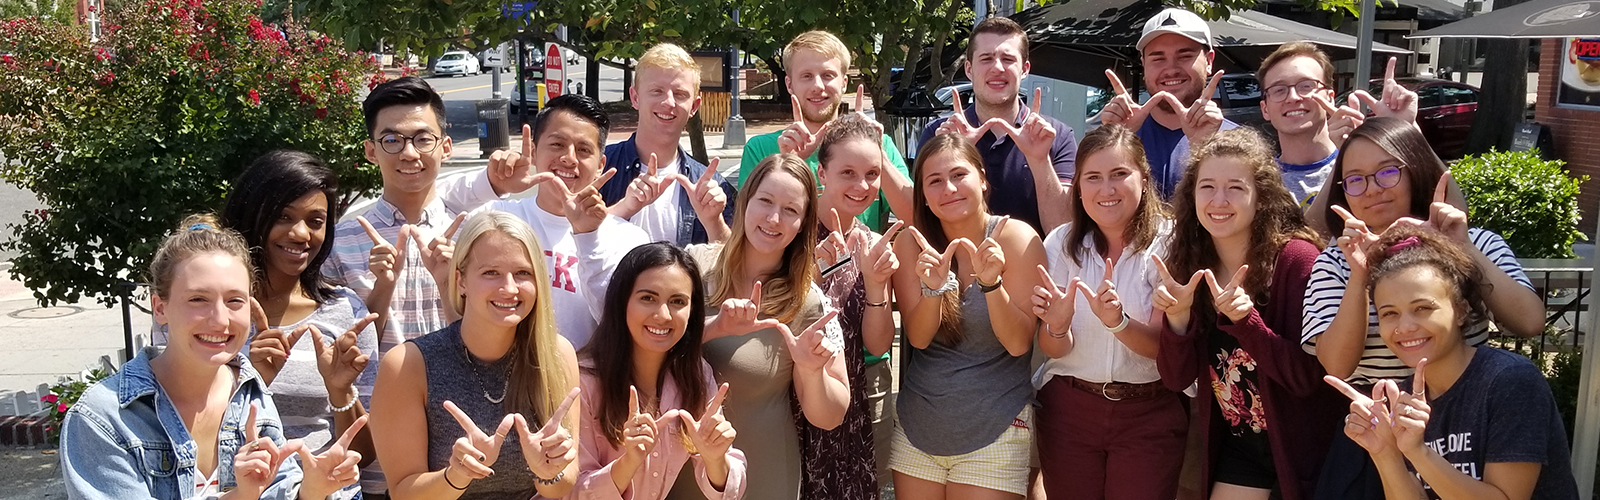 Wisconsin in Washington students flashing finger W's